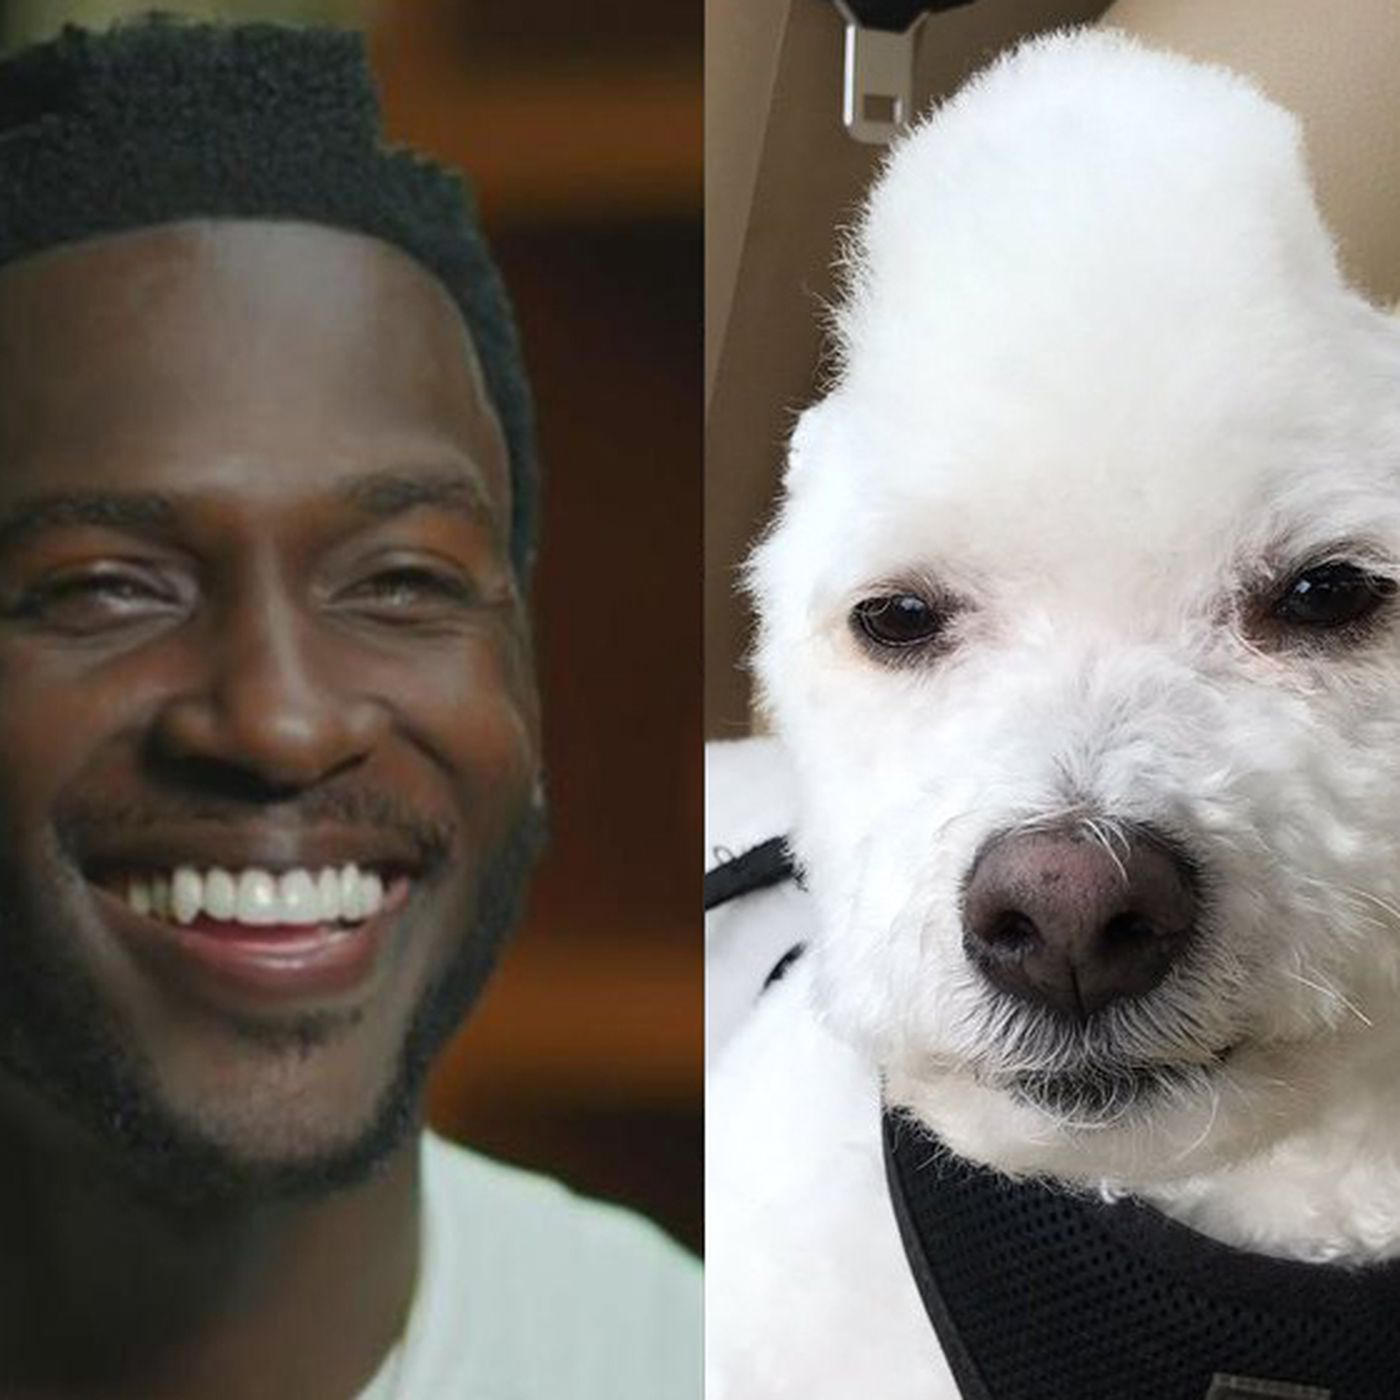 Antonio Brown Got A Big Kick Out Of This Dog That Stole His Haircut